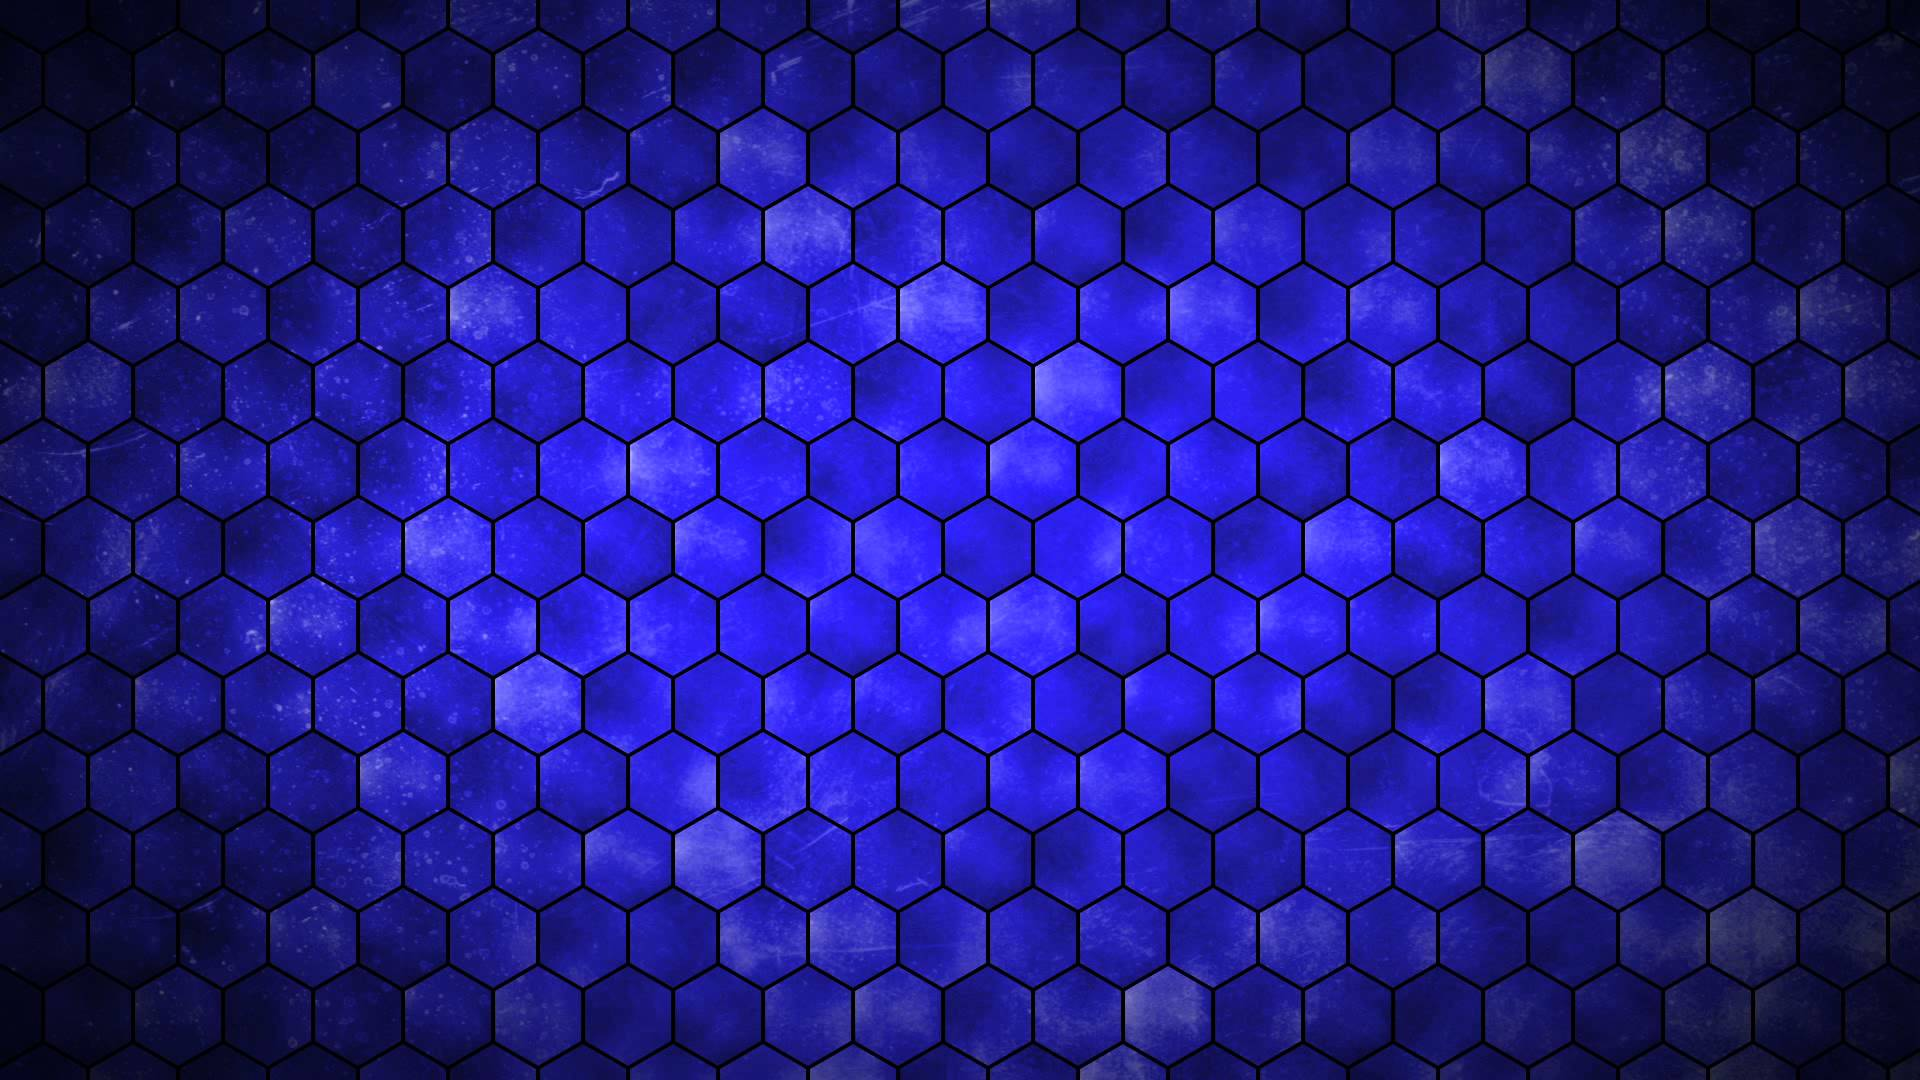 Blue Hexagon Grid Hd Picture Backgrounds